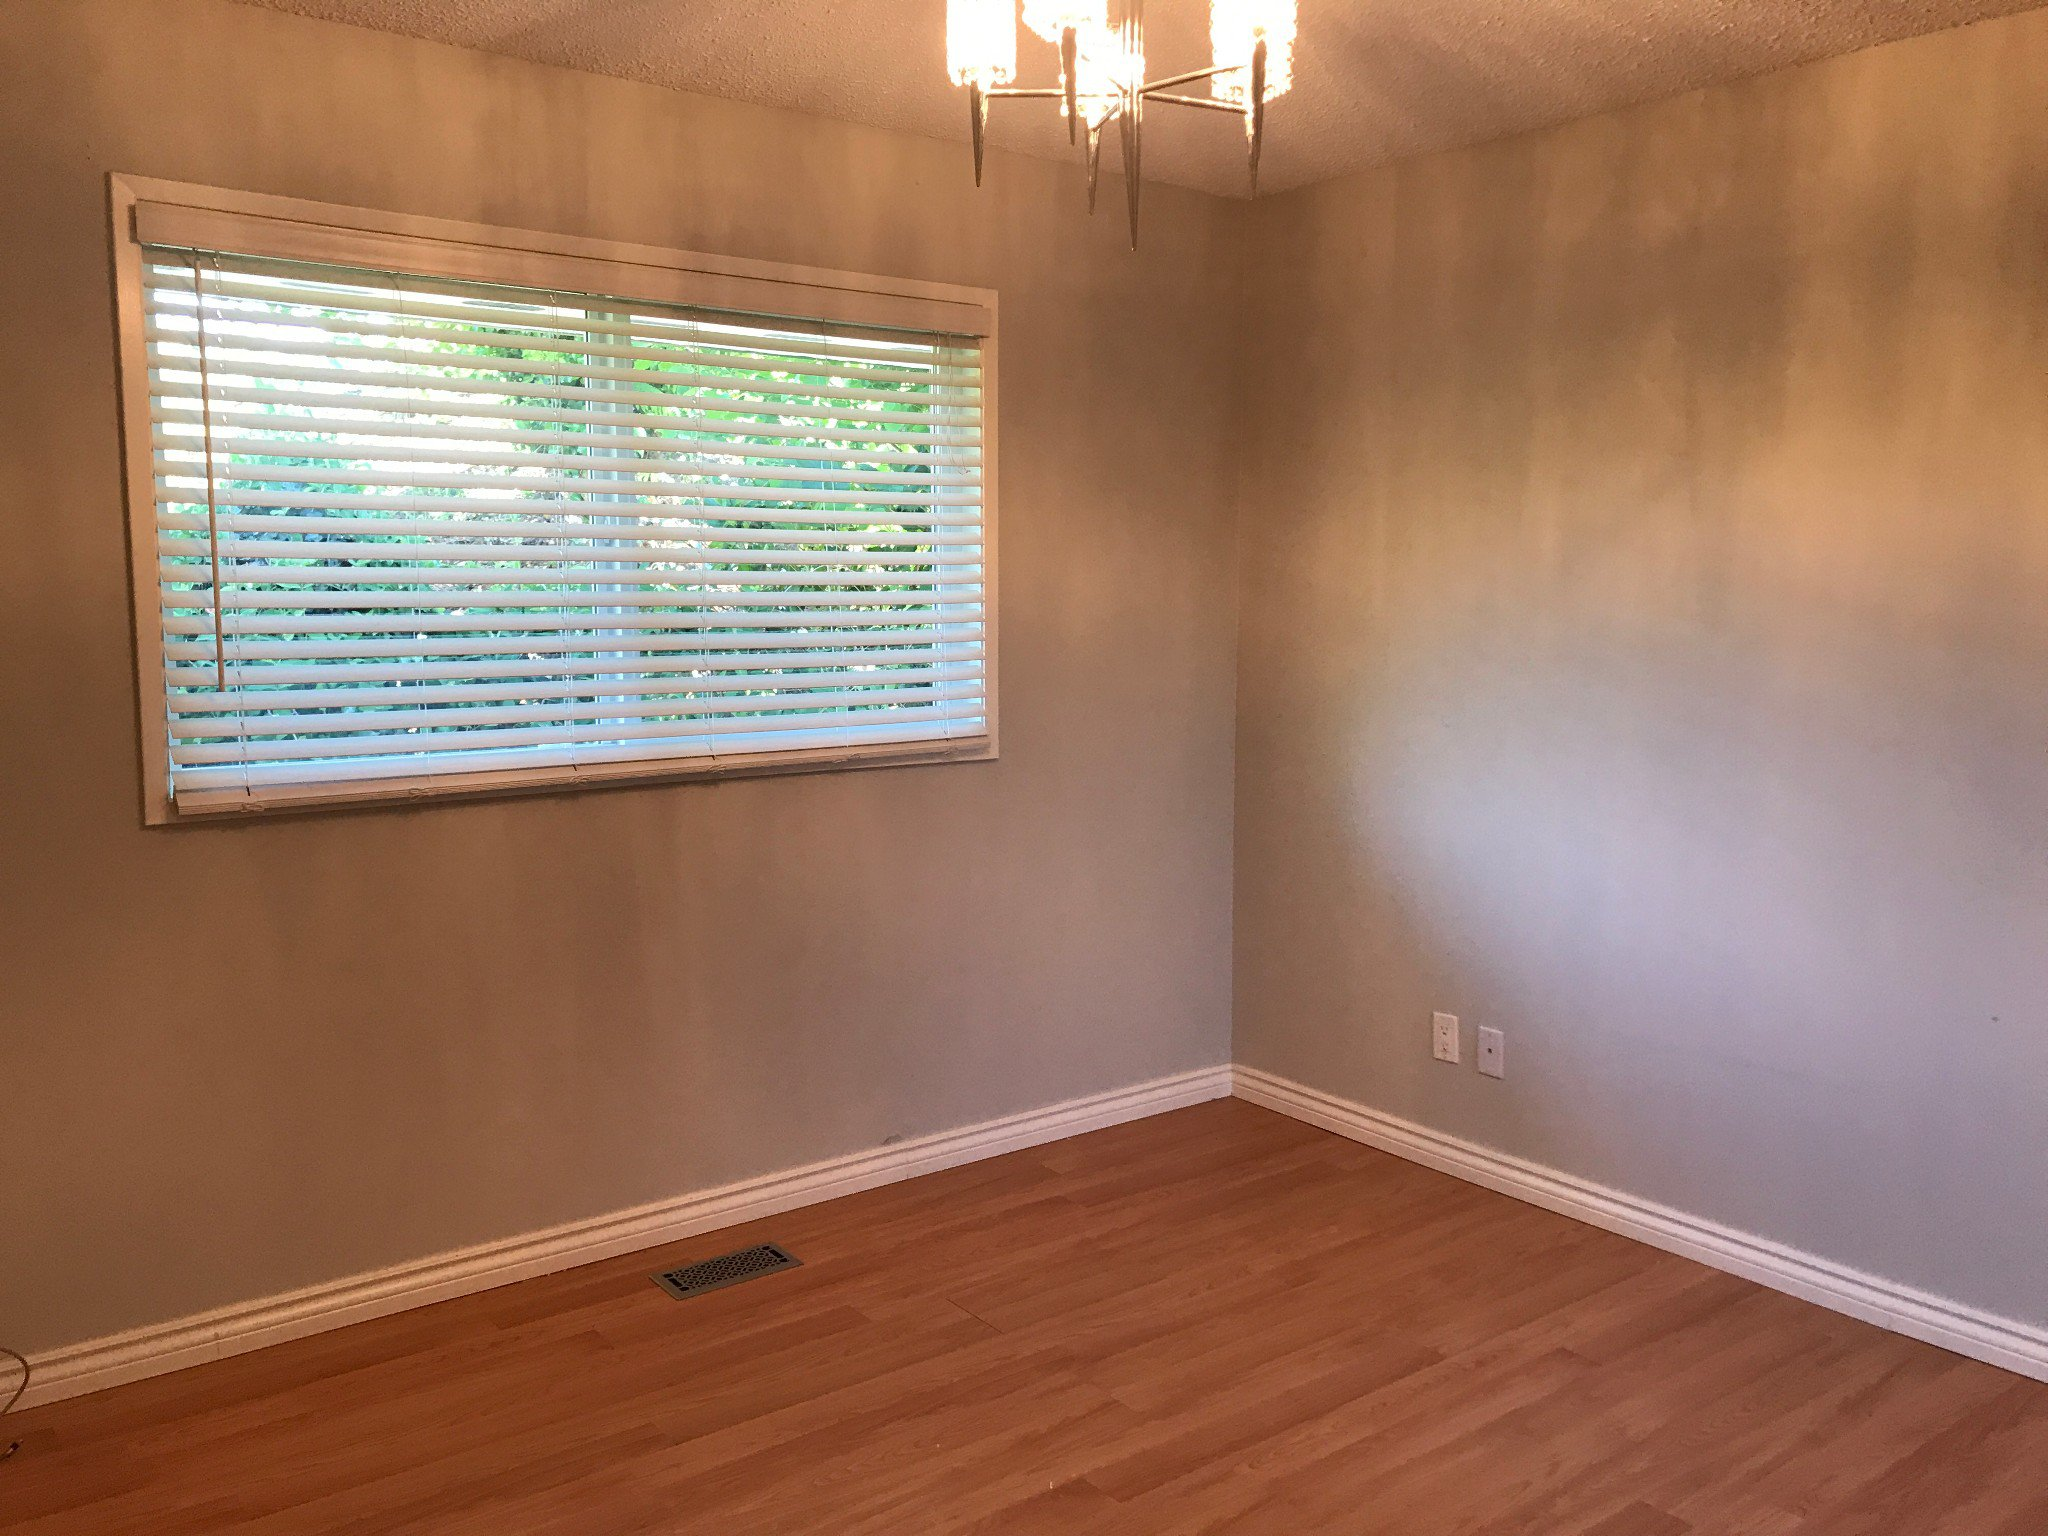 Photo 11: Photos: 34694 Dewdney Trunk Rd. in Mission: House for rent